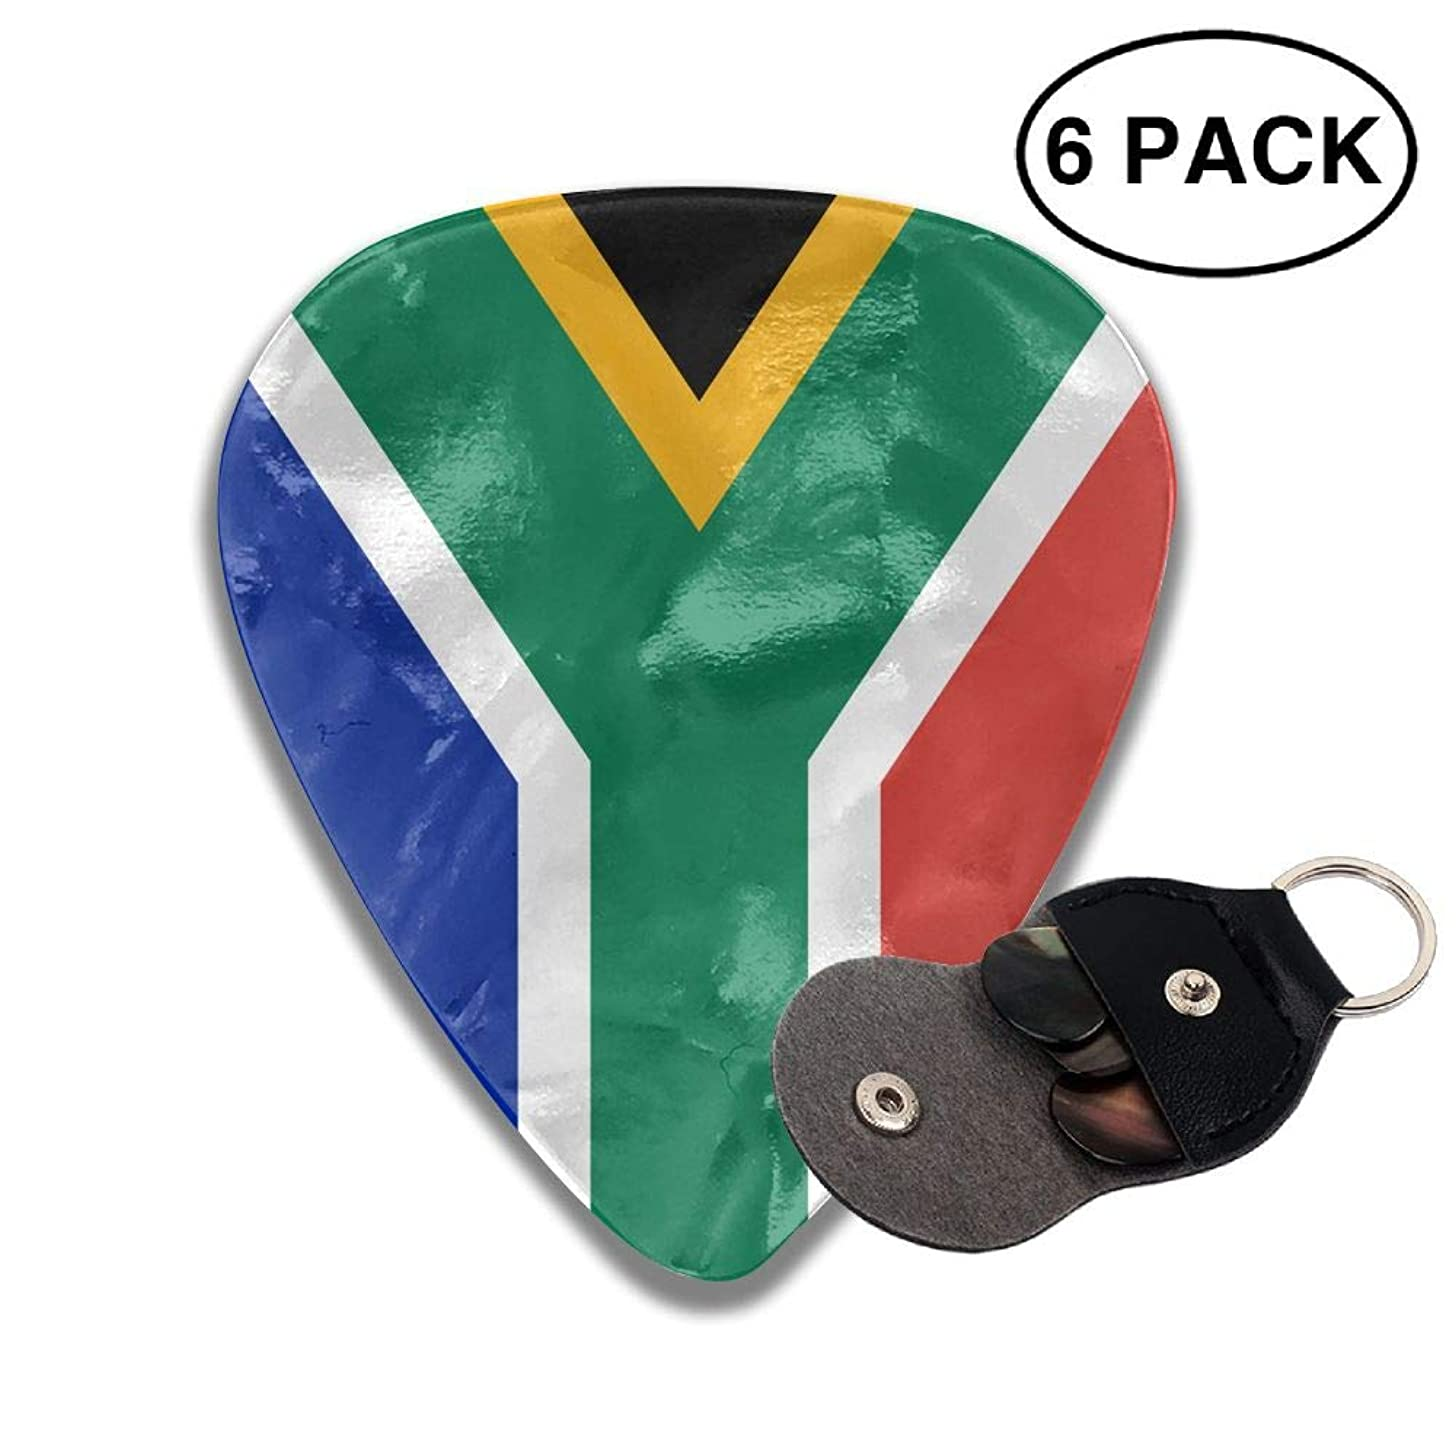 CUTEDWARF 6 Pieces of Personalized Guitar Picks South African Flag Print